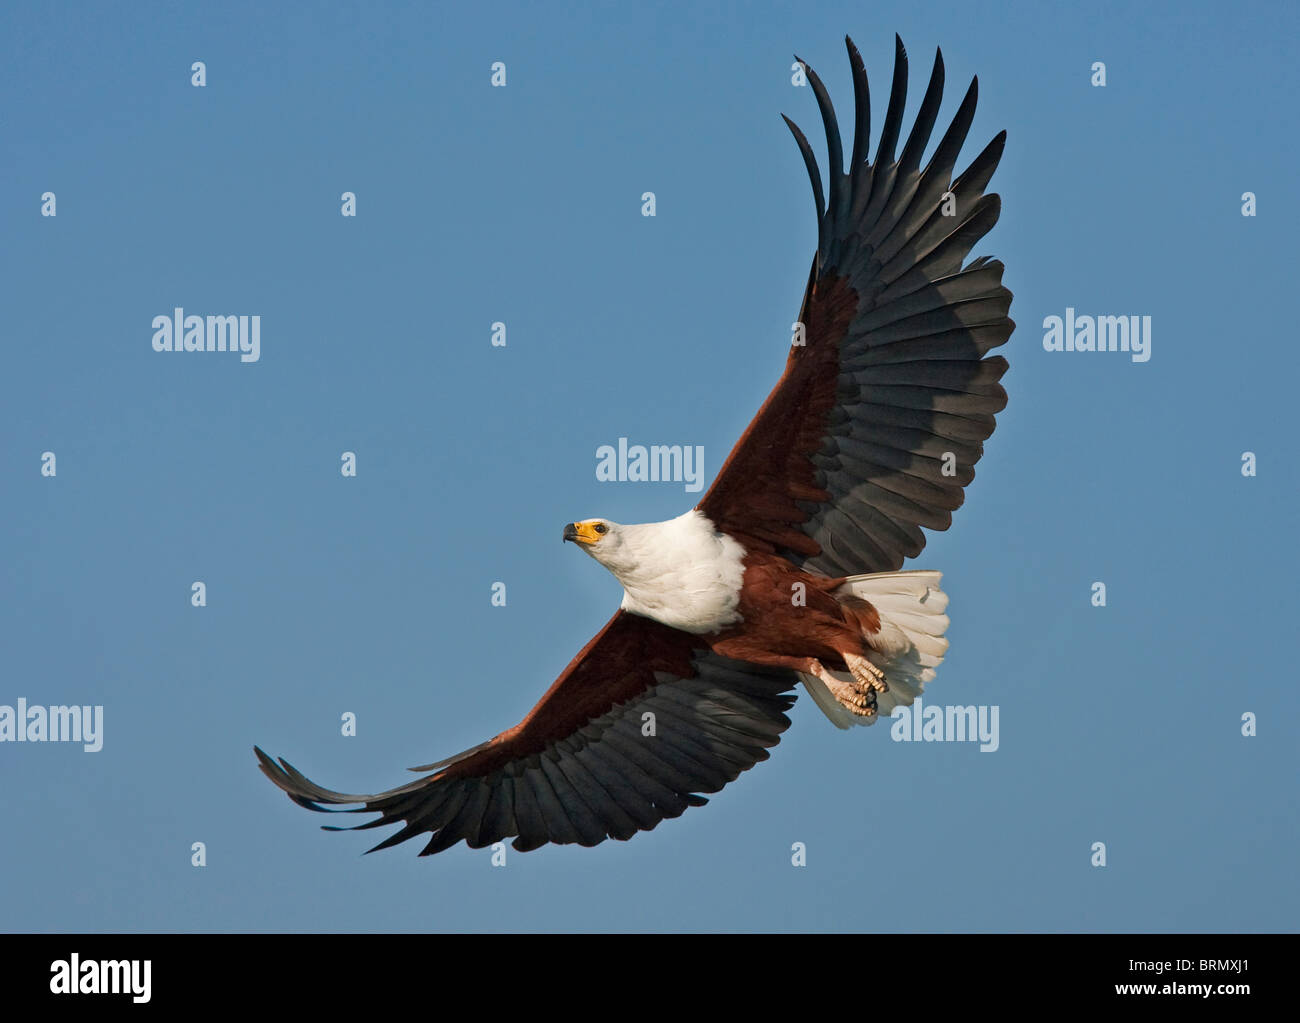 African fish eagle soaring - Stock Image